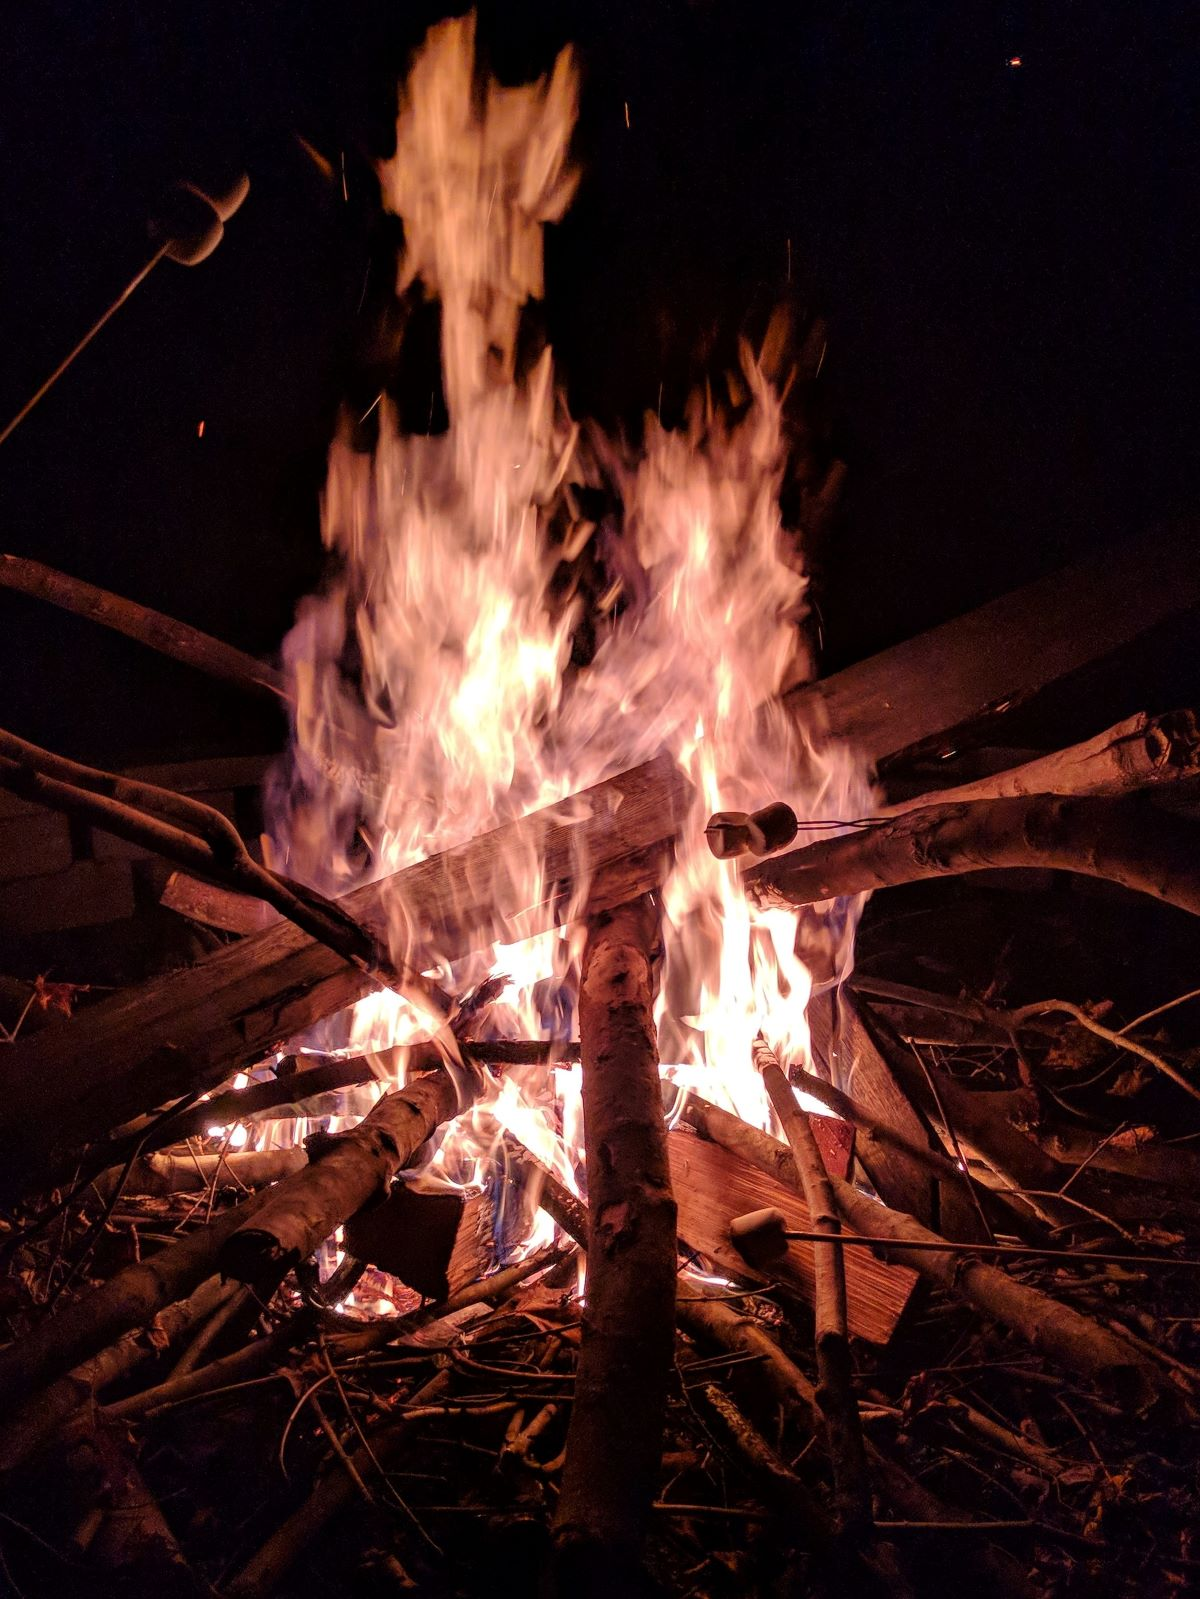 Bonfire at night with people making s'mores